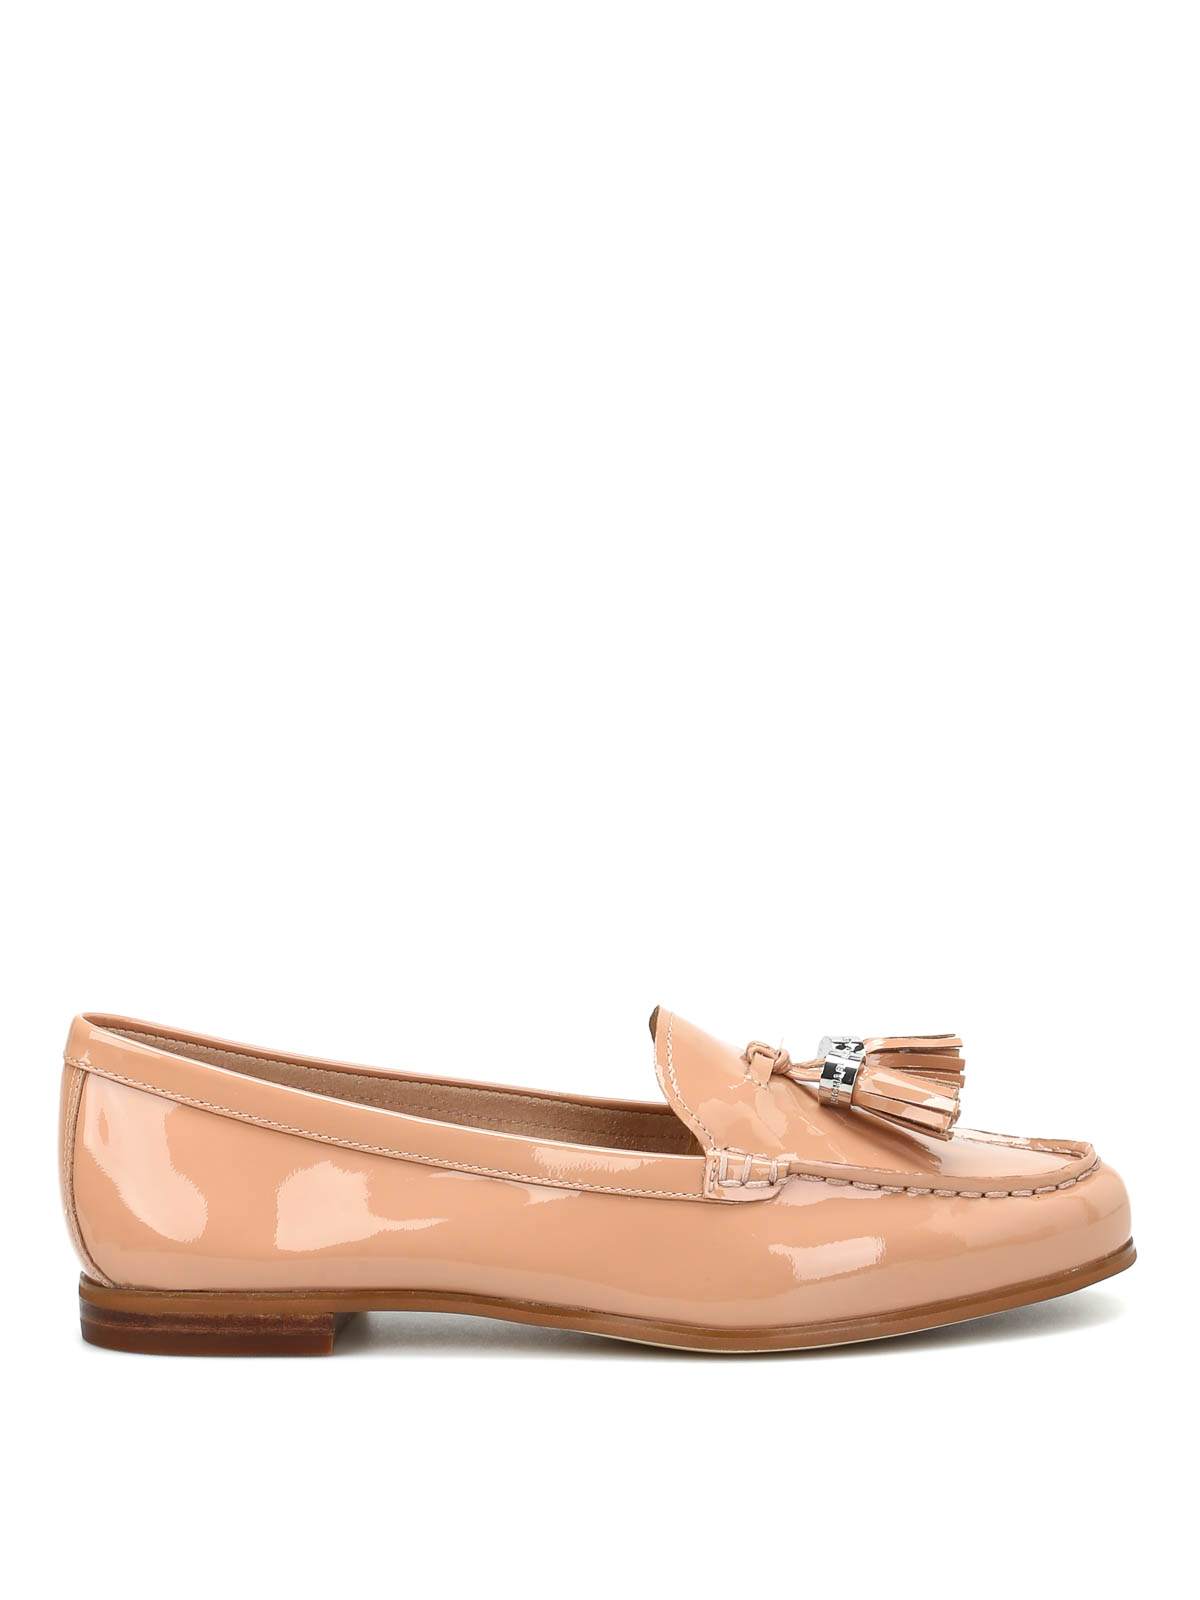 callahan patent leather loafers by michael kors loafers. Black Bedroom Furniture Sets. Home Design Ideas